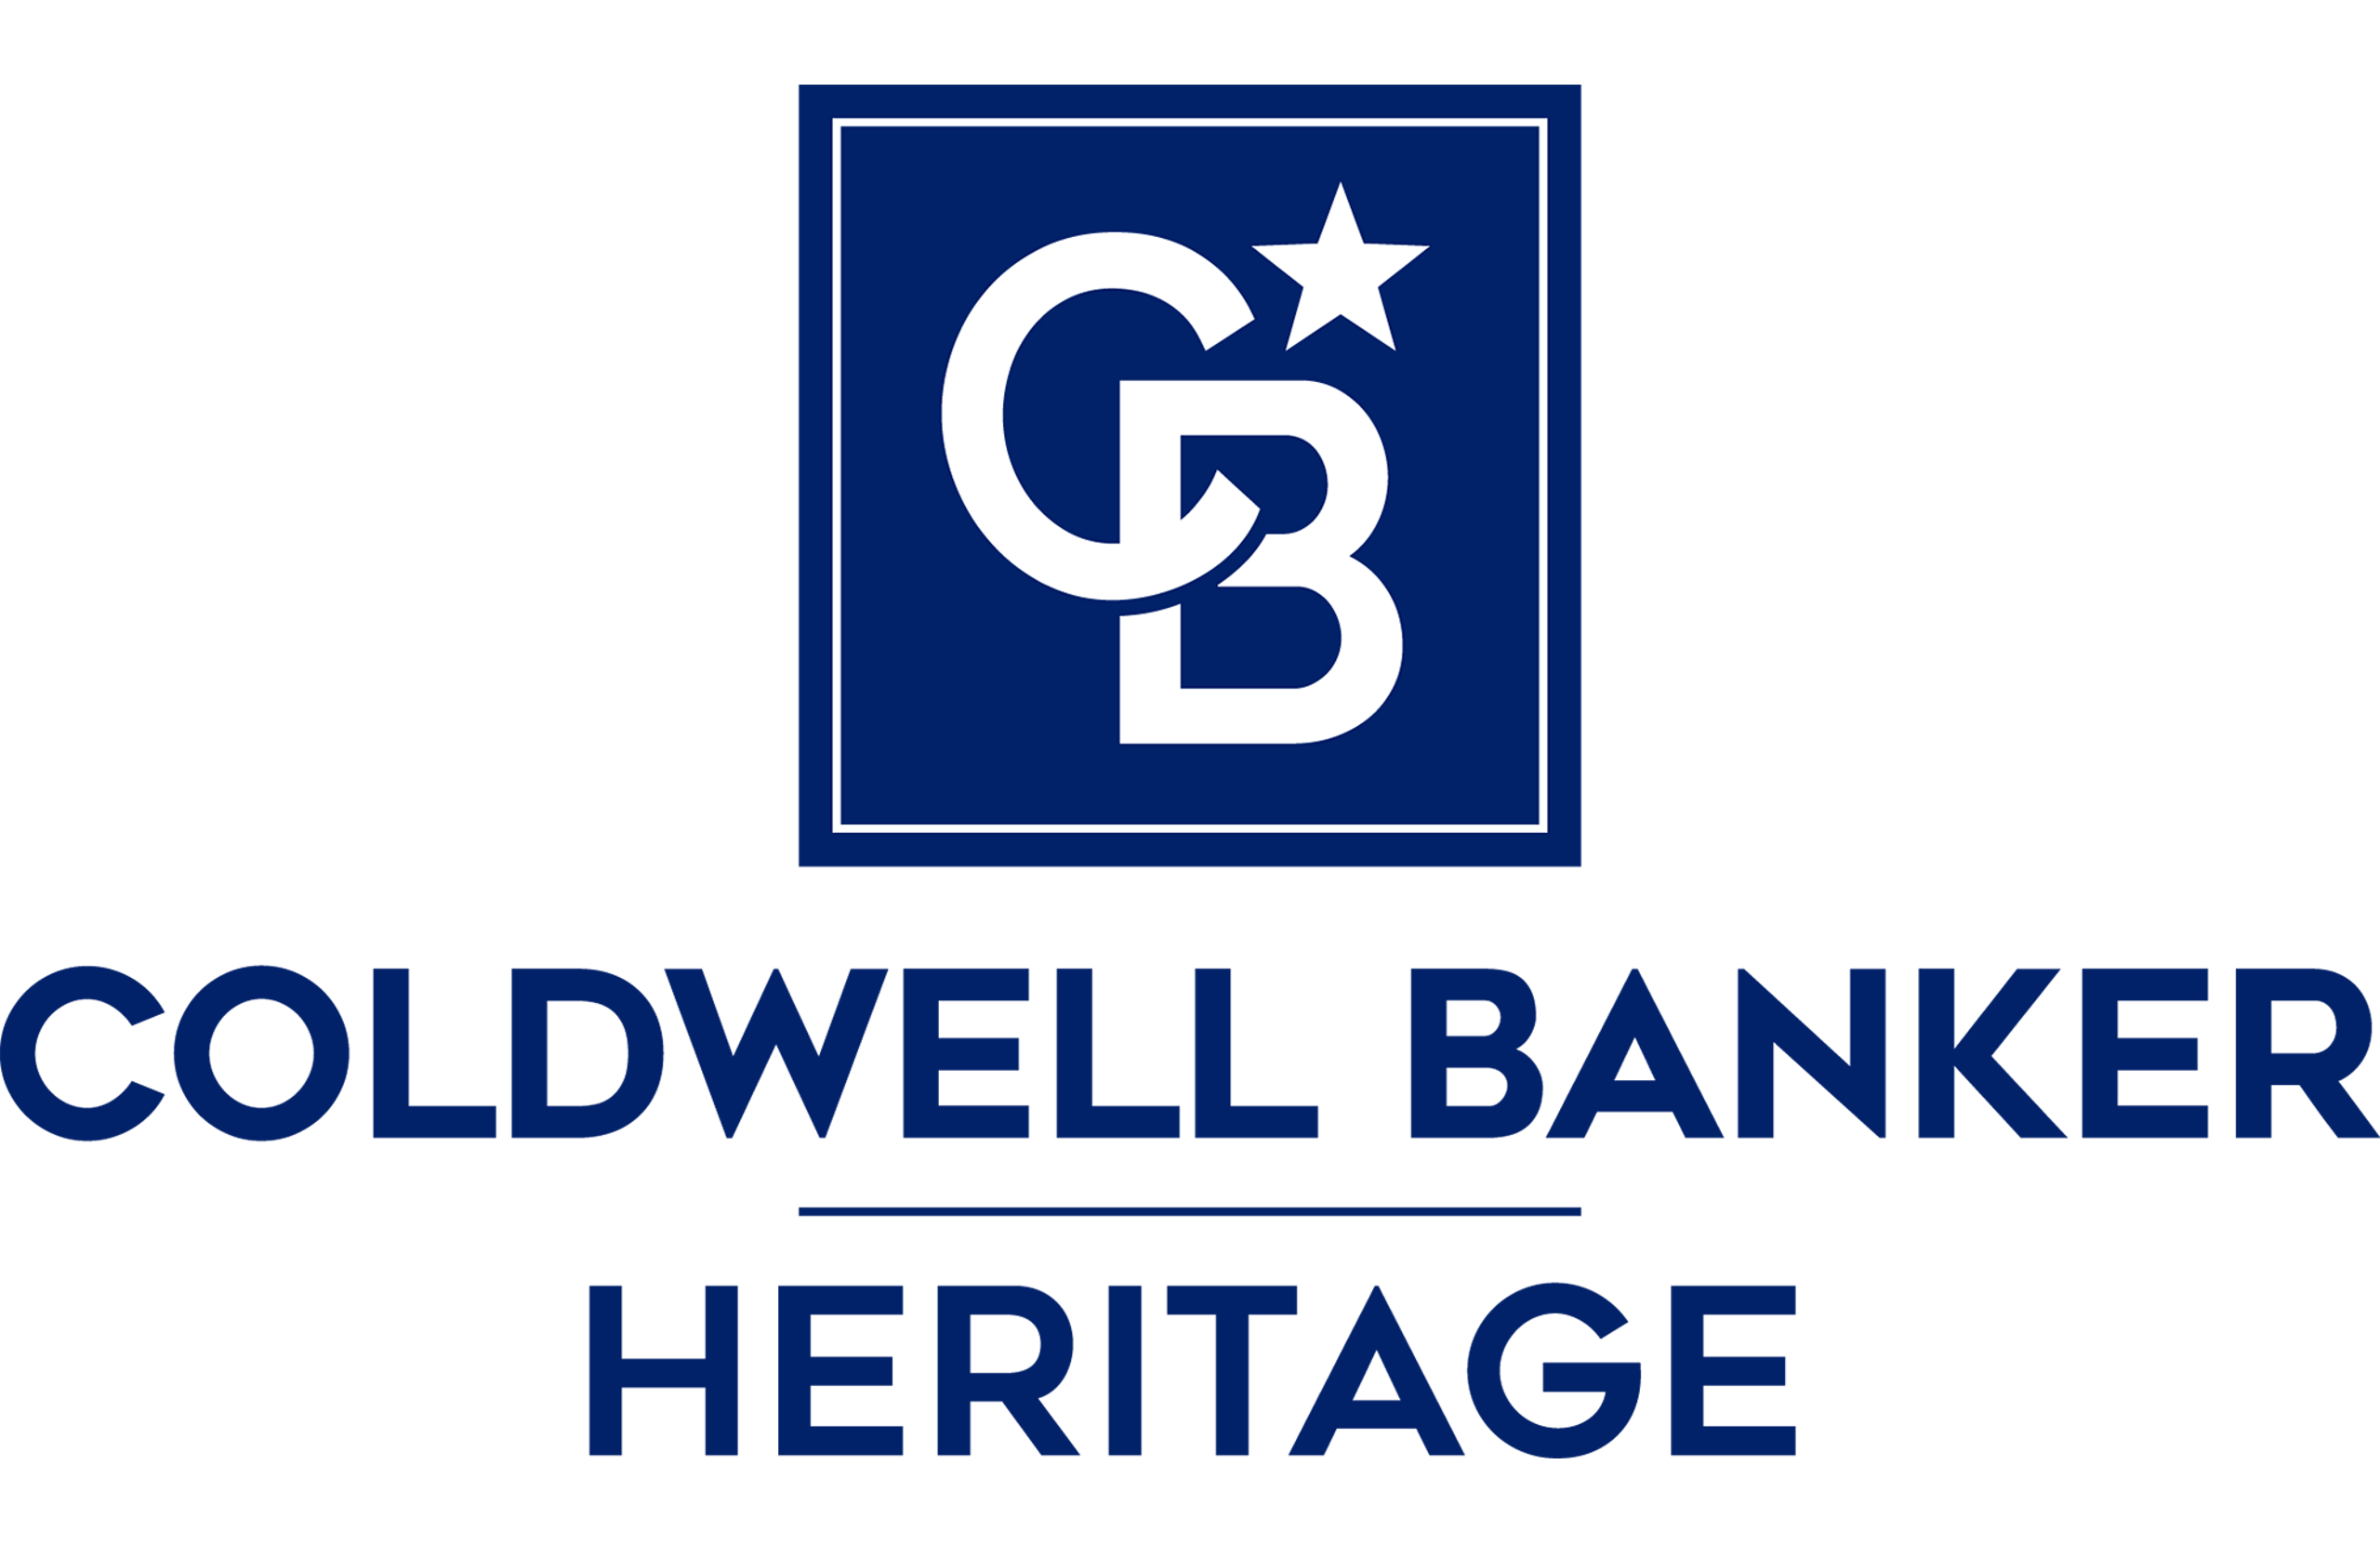 Josh Agent - Coldwell Banker Heritage